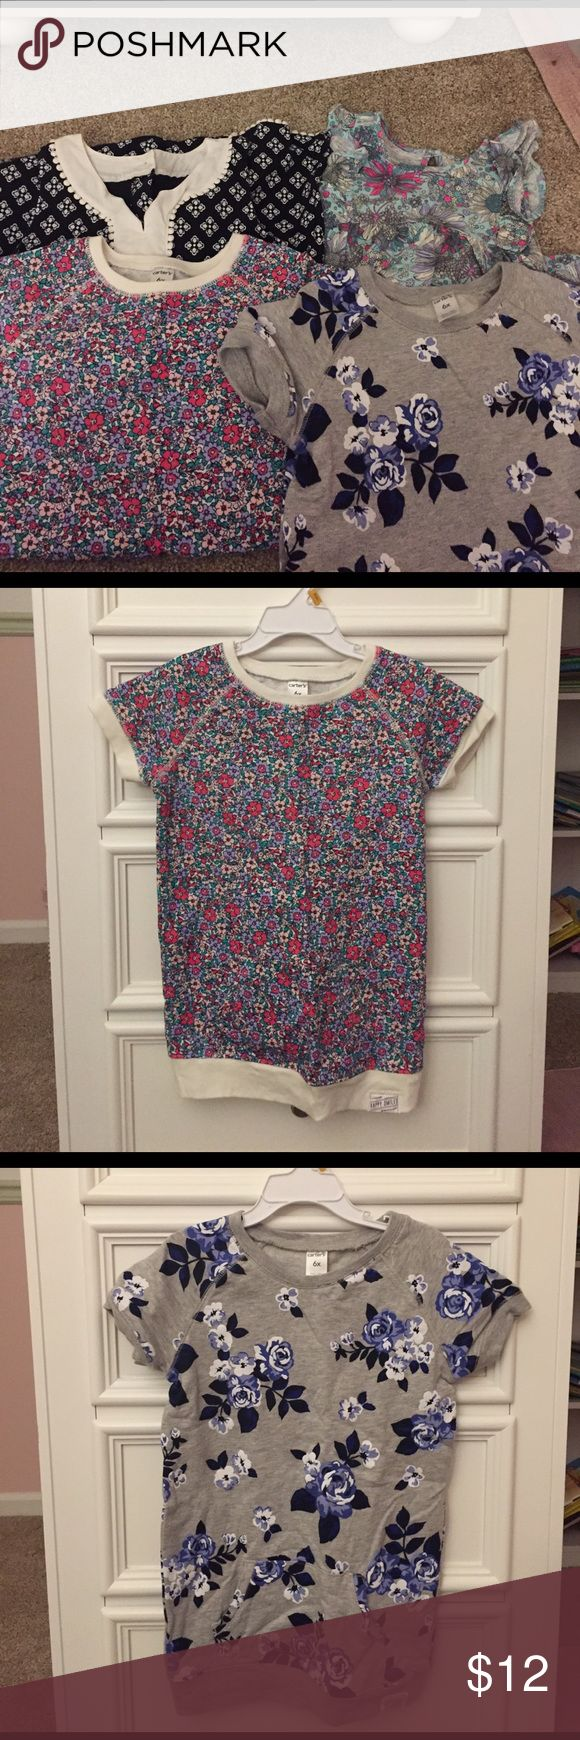 Lot of girls size 6x 2 Carter's terry sweatshirt tunics (one cream-colored with pink, purple and green floral print, one gray with blue floral print), both washed but unworn; 1 black and white Carter's shift dress, worn once; 1 turquoise, hot pink and lavender floral print tunic (Osh Kosh, gently used). 3 are 100% cotton, the black dress has some stretch as pictured from tag. Also, a white floral dress from Epic Threads (Macy's), worn once. Shirts & Tops